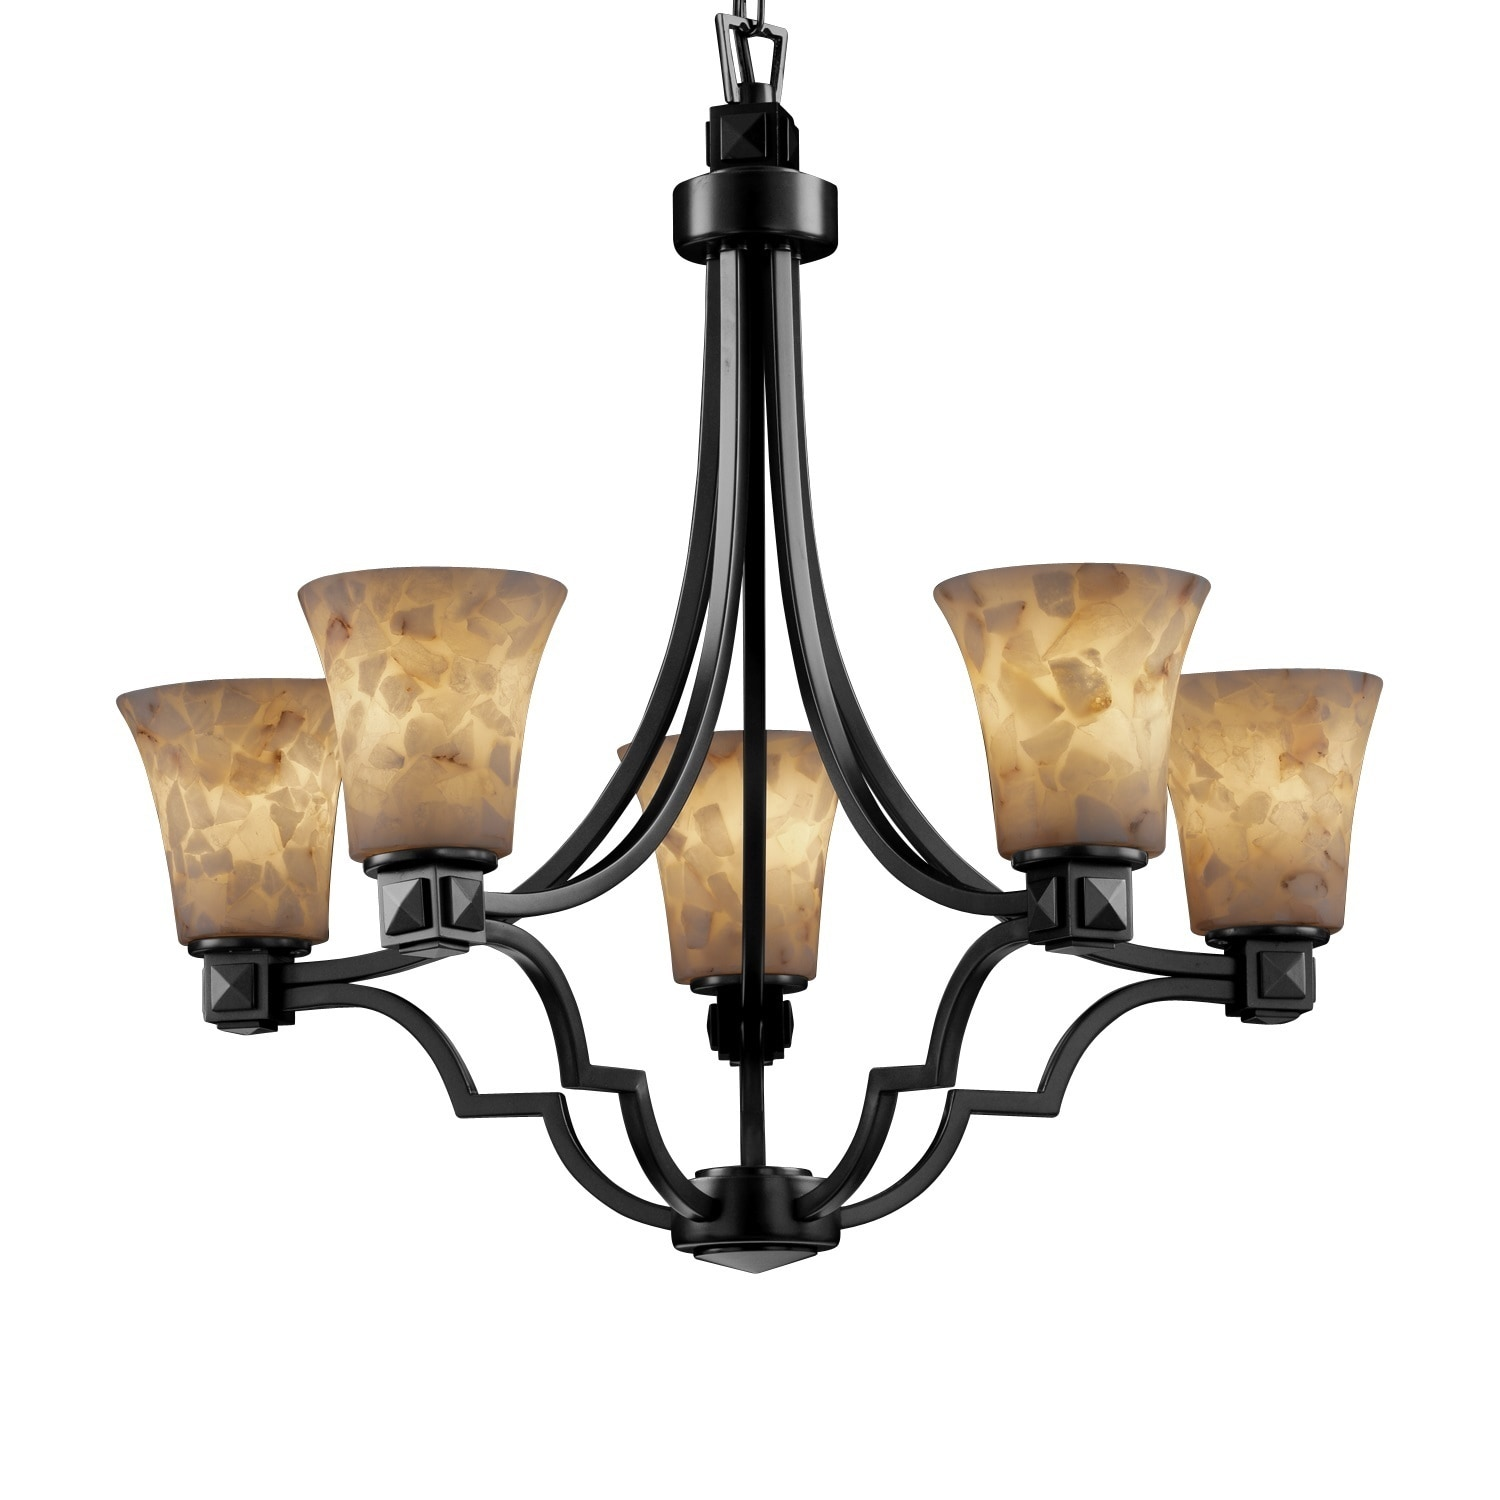 Justice Design Group Alabaster Rocks Argyle 5 light Dark Bronze